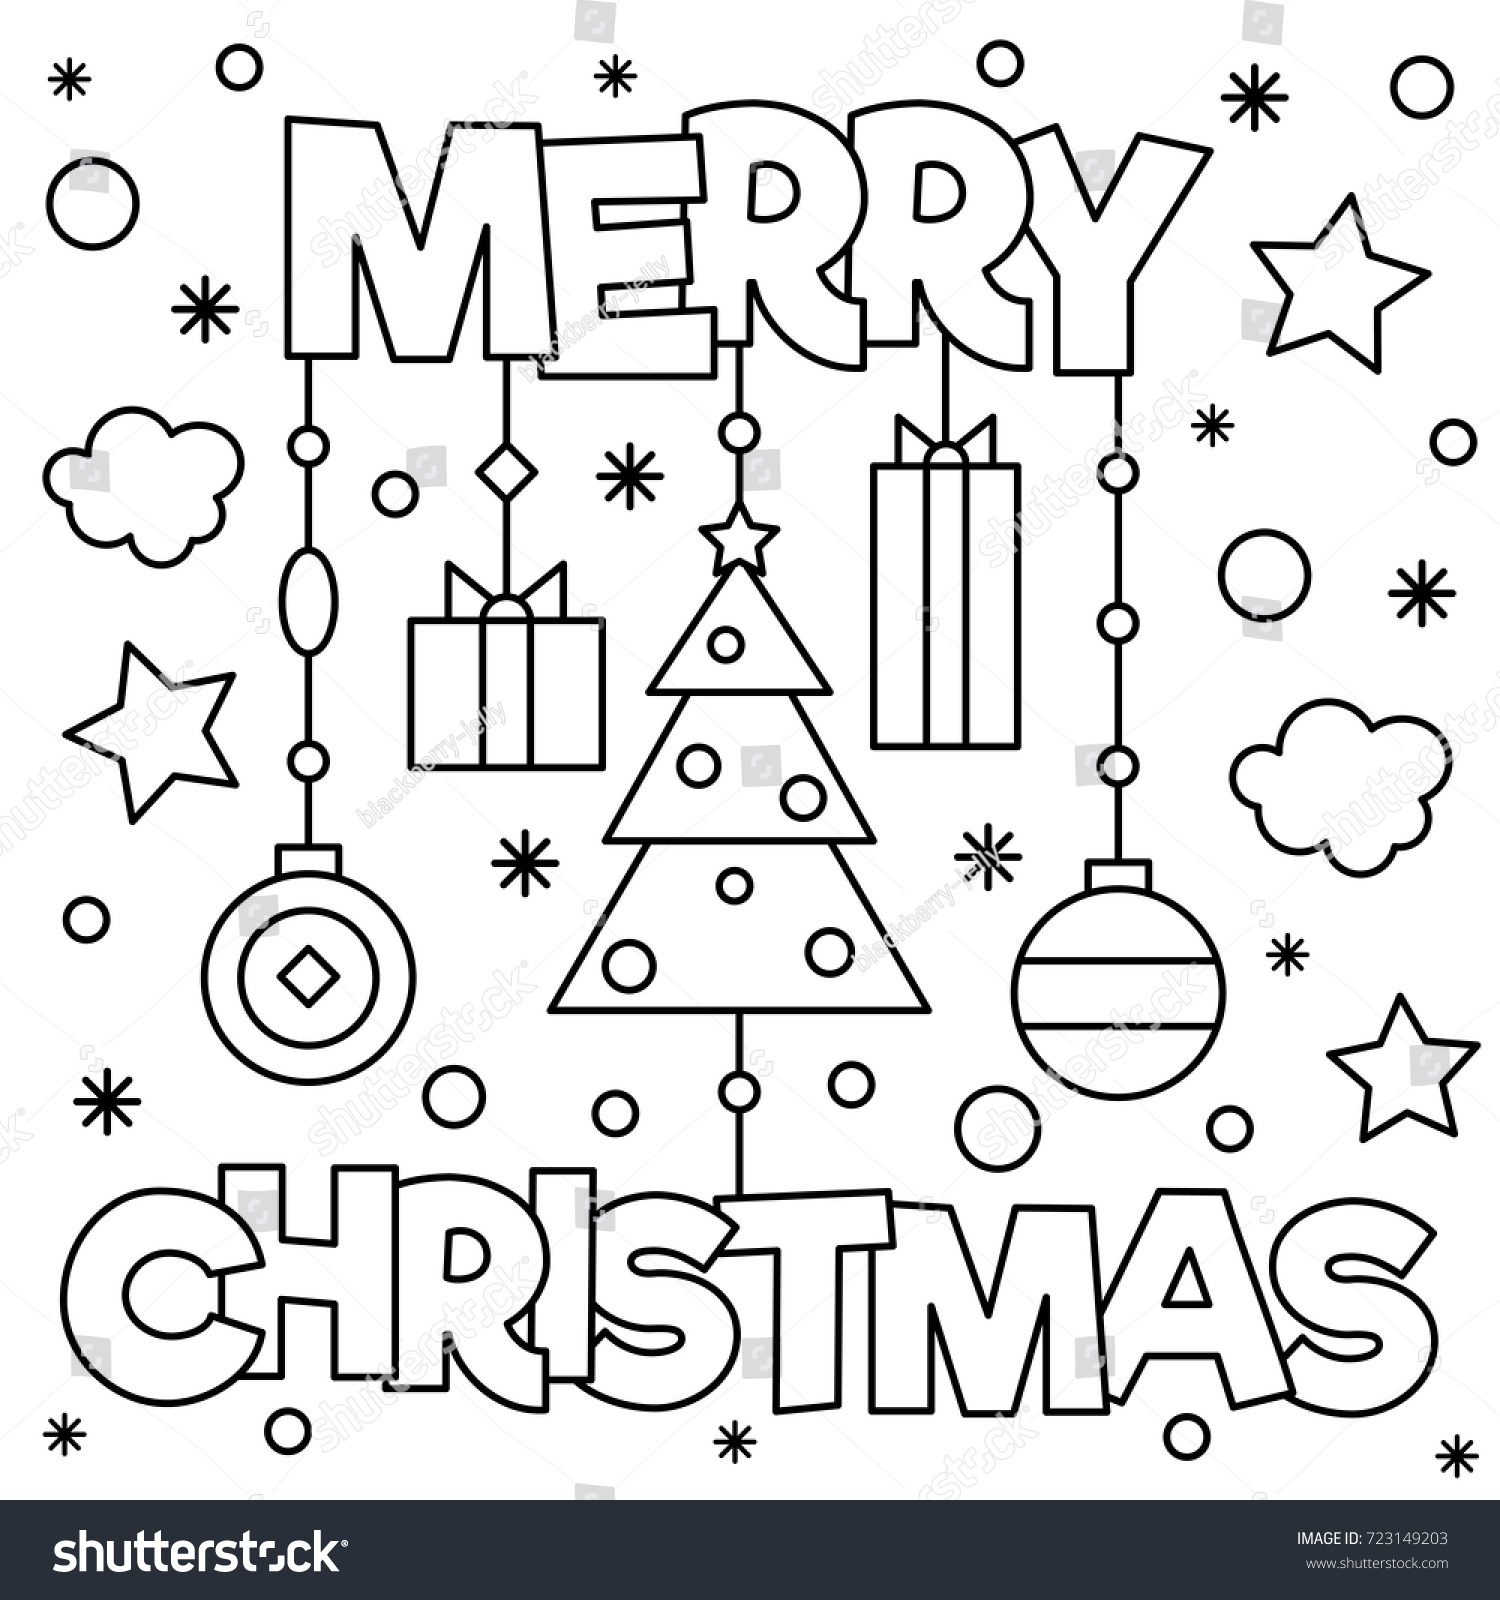 Merry Christmas Coloring Page Vector Illustration Stock Vector ...